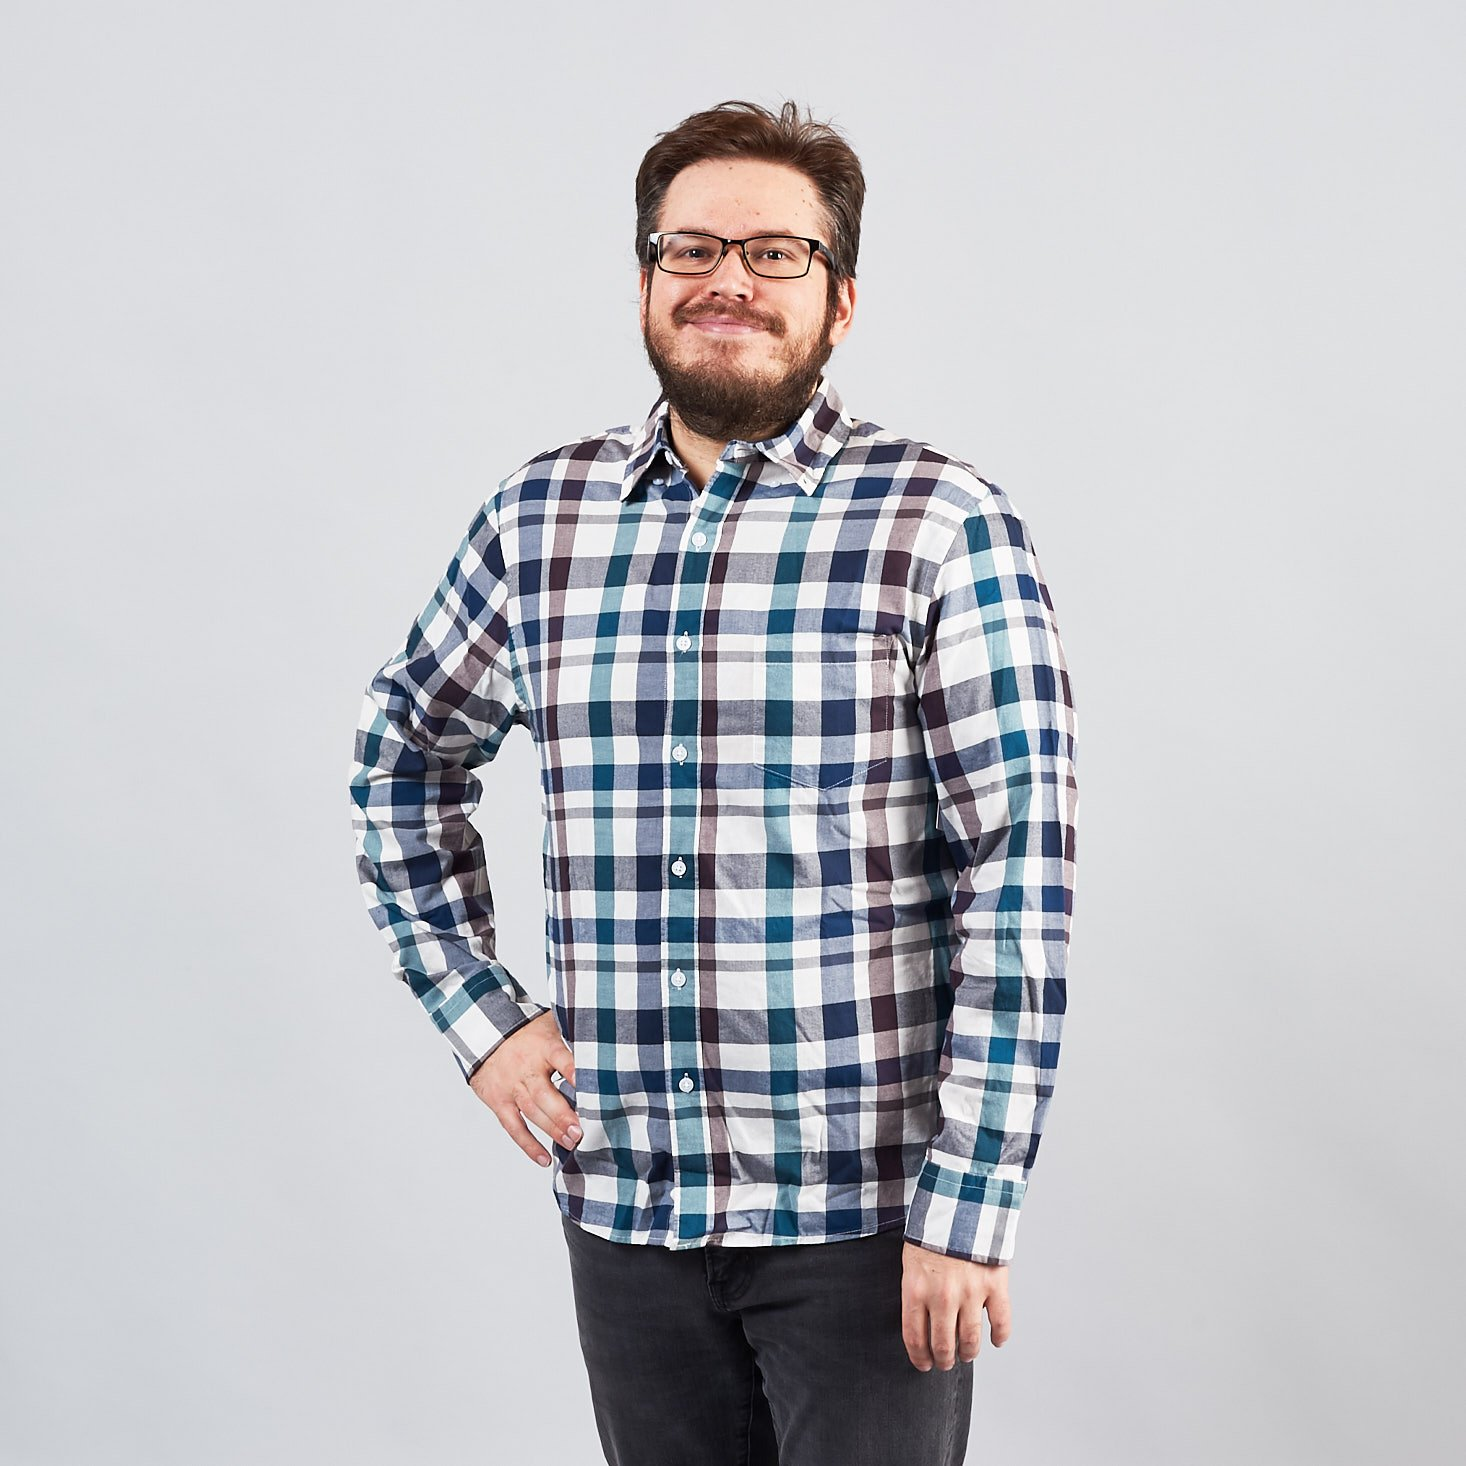 Stitch Fix for Men Clothing Box Review